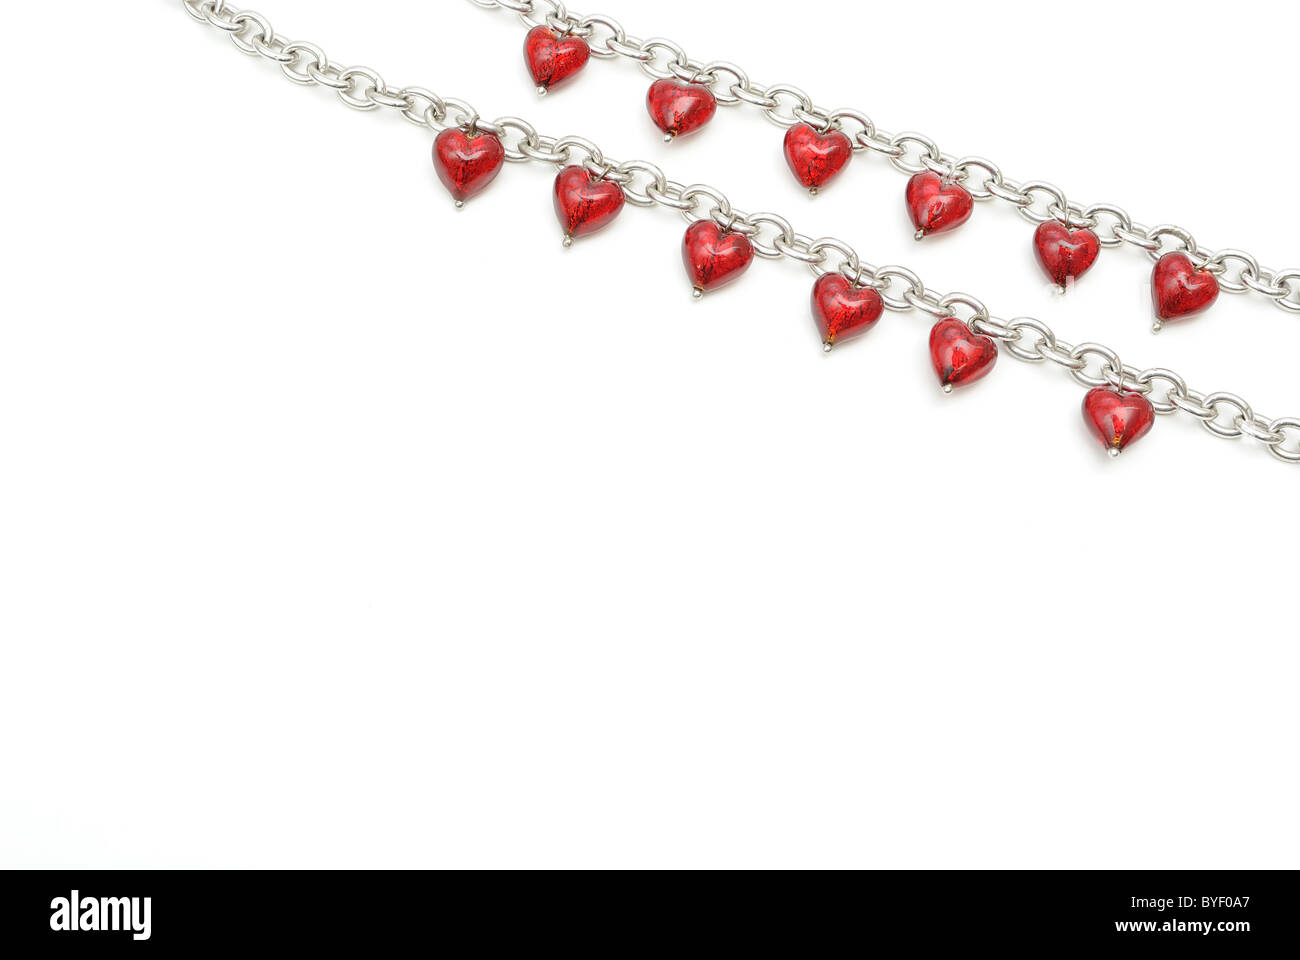 Heart Jewelry isolated on white with copy space - Stock Image